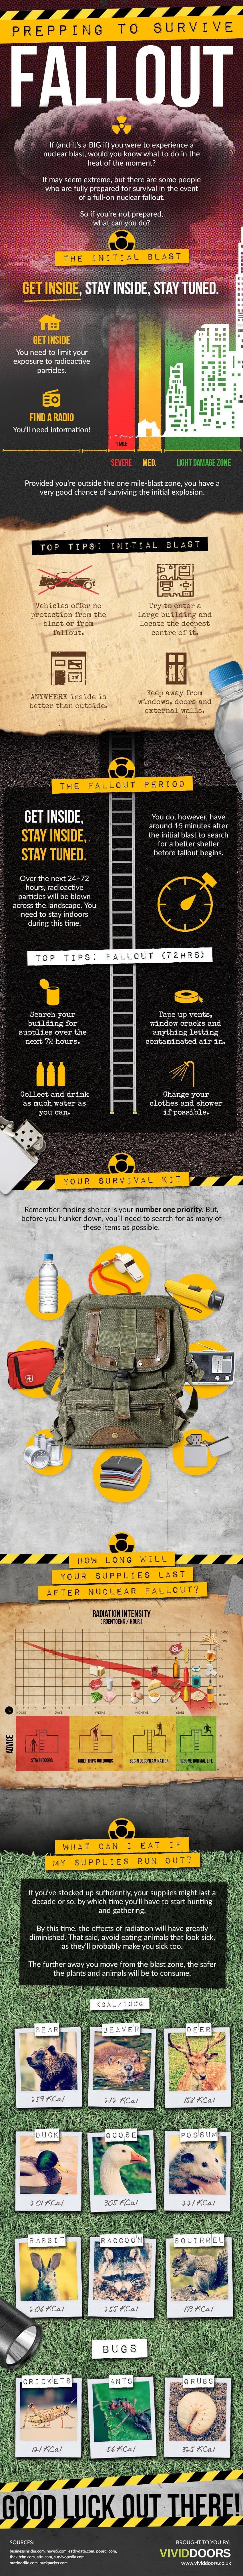 How to Survive Nuclear Fallout (Infographic)